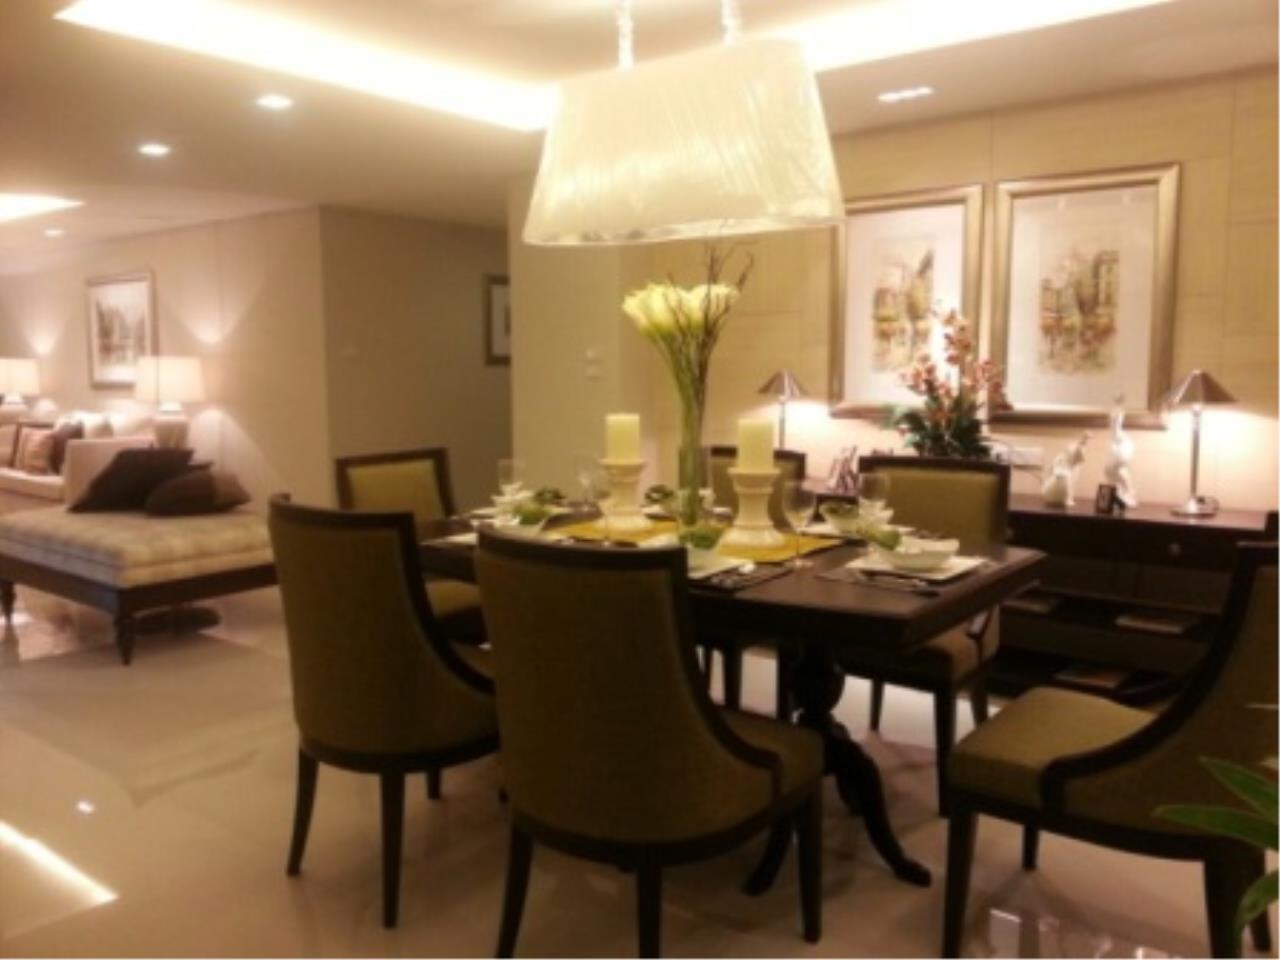 BKK Condos Agency's Vintage cozy 3 bedroom condo for rent at Romsai Residence   Thong Lo  3